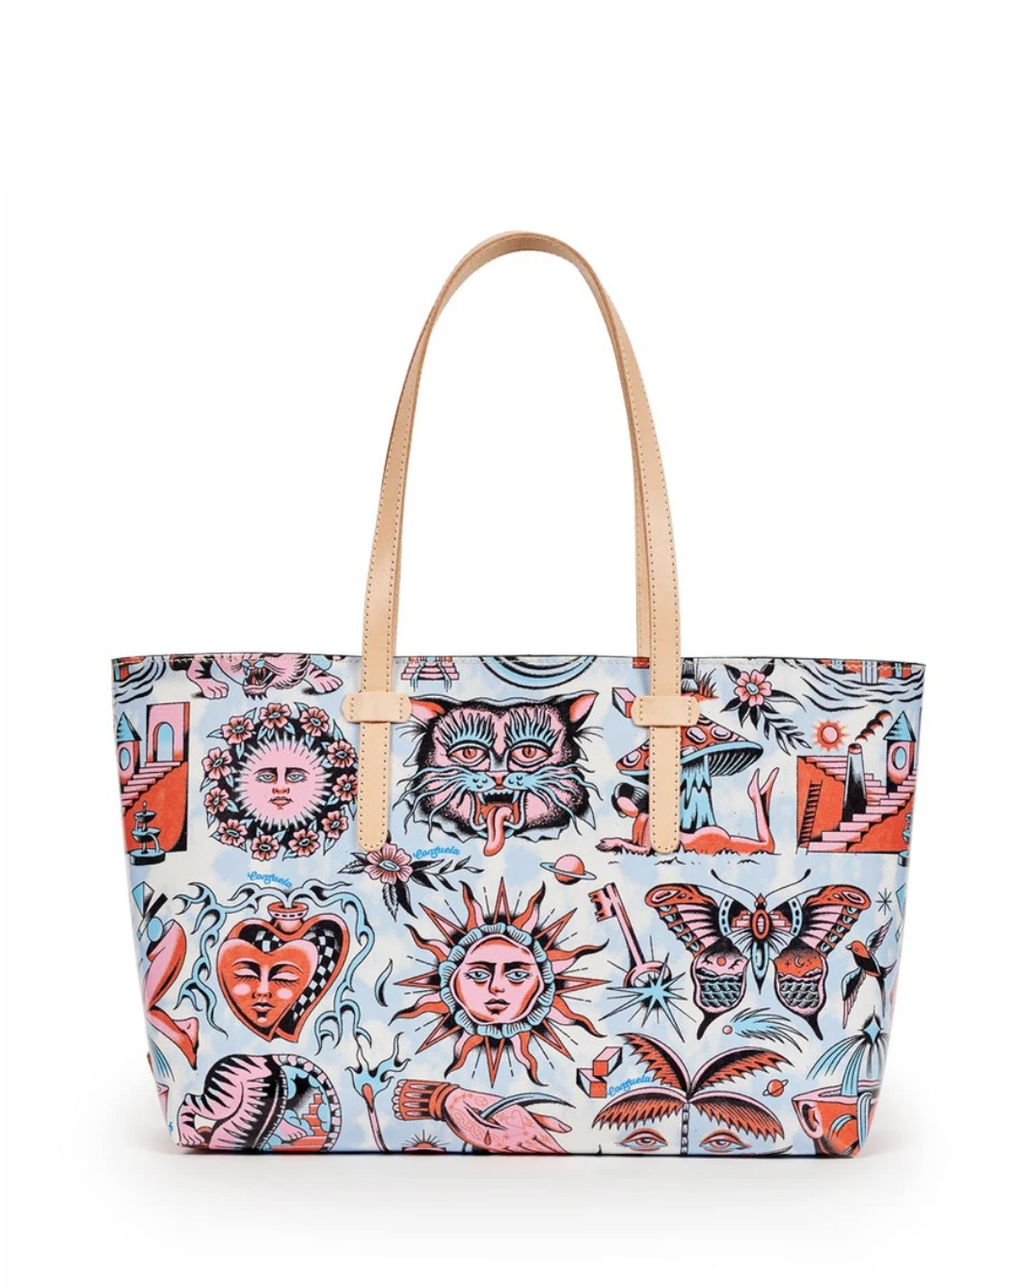 VICO BREEZY EAST/WEST TOTE